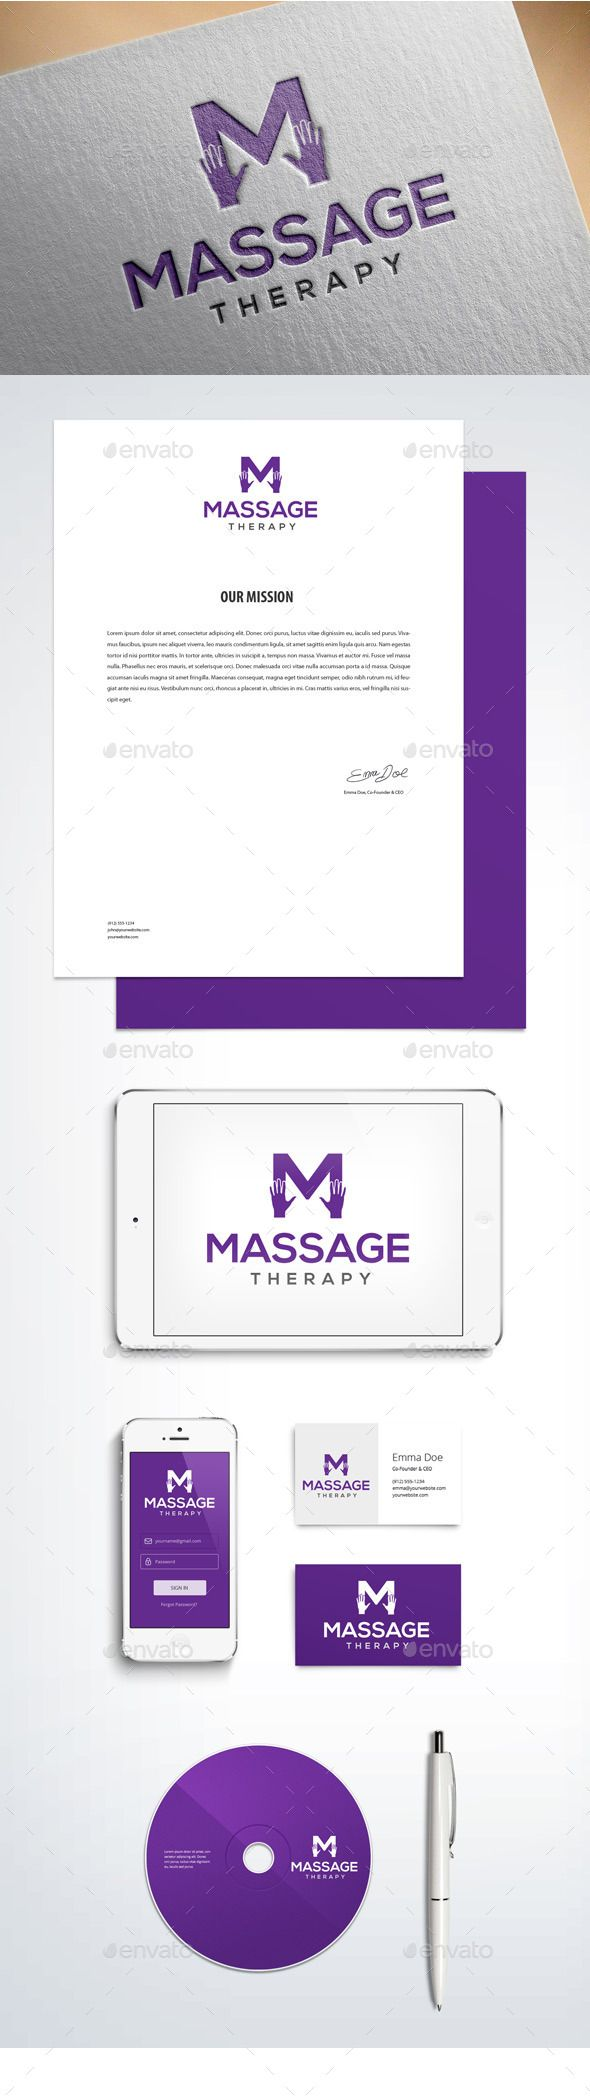 Massage and Physical Therapy Logo Графический дизайн